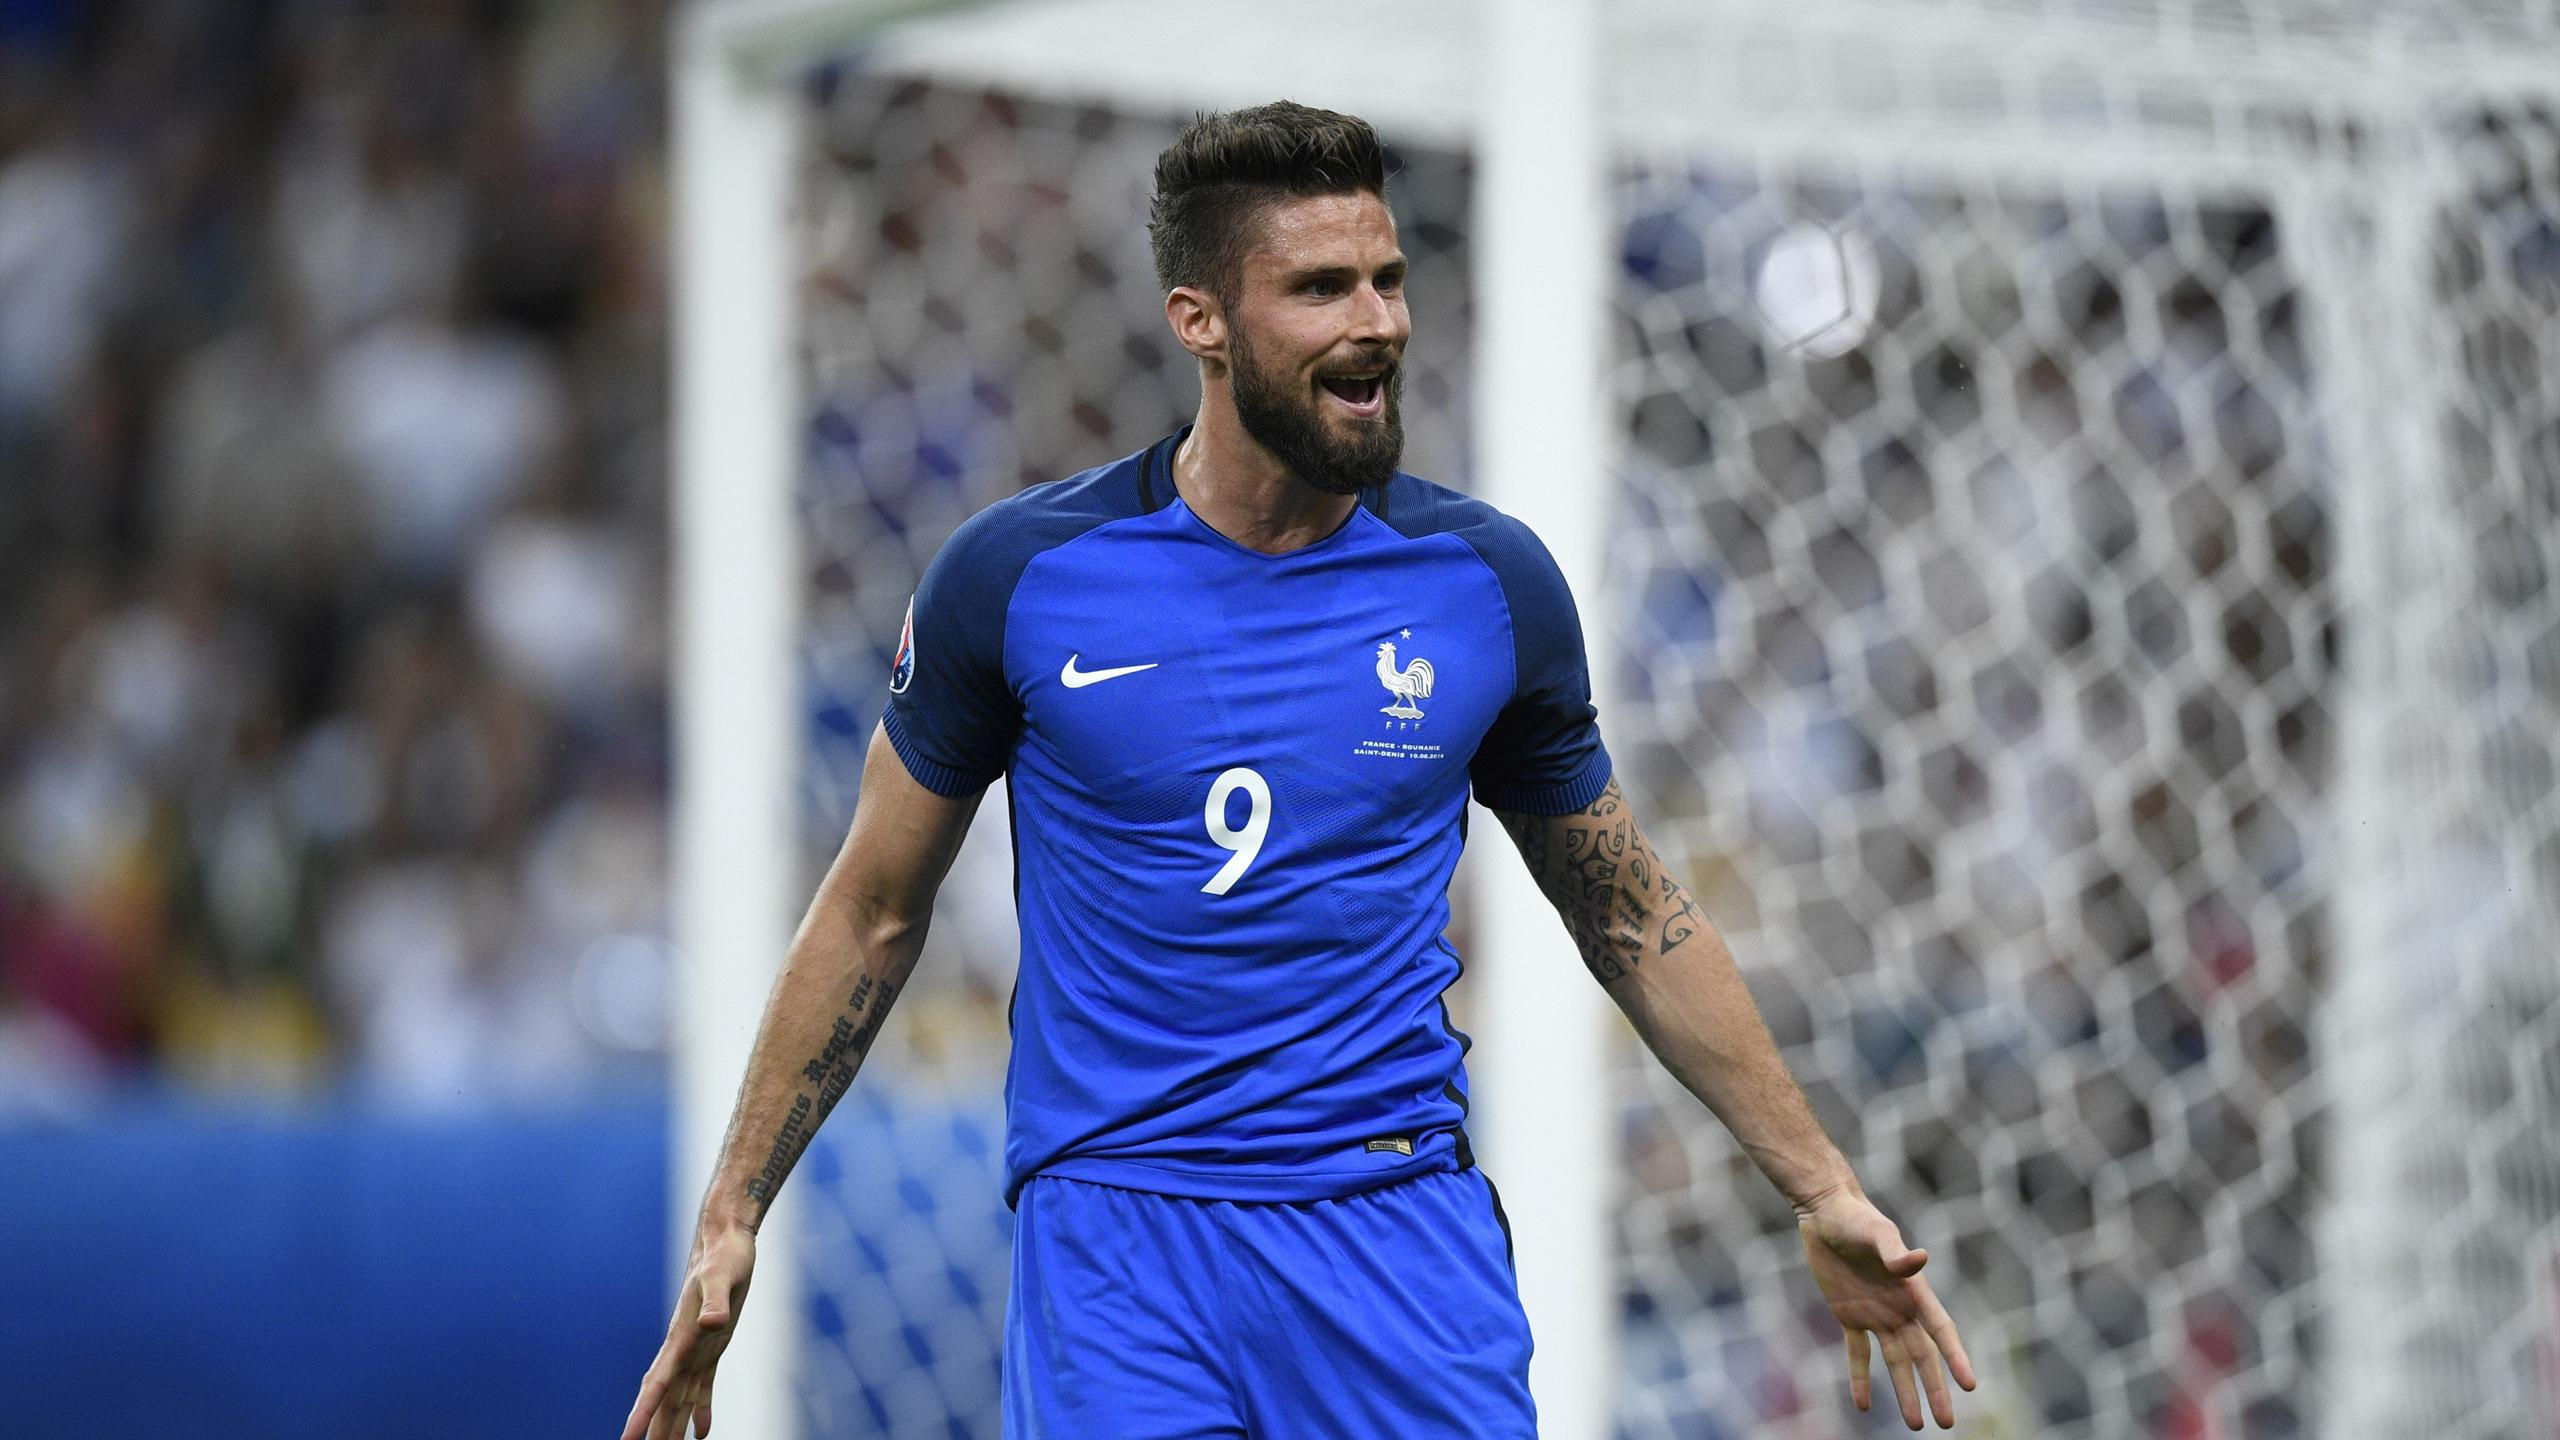 France's forward Olivier Giroud reacts during the Euro 2016 group A football match between France and Romania